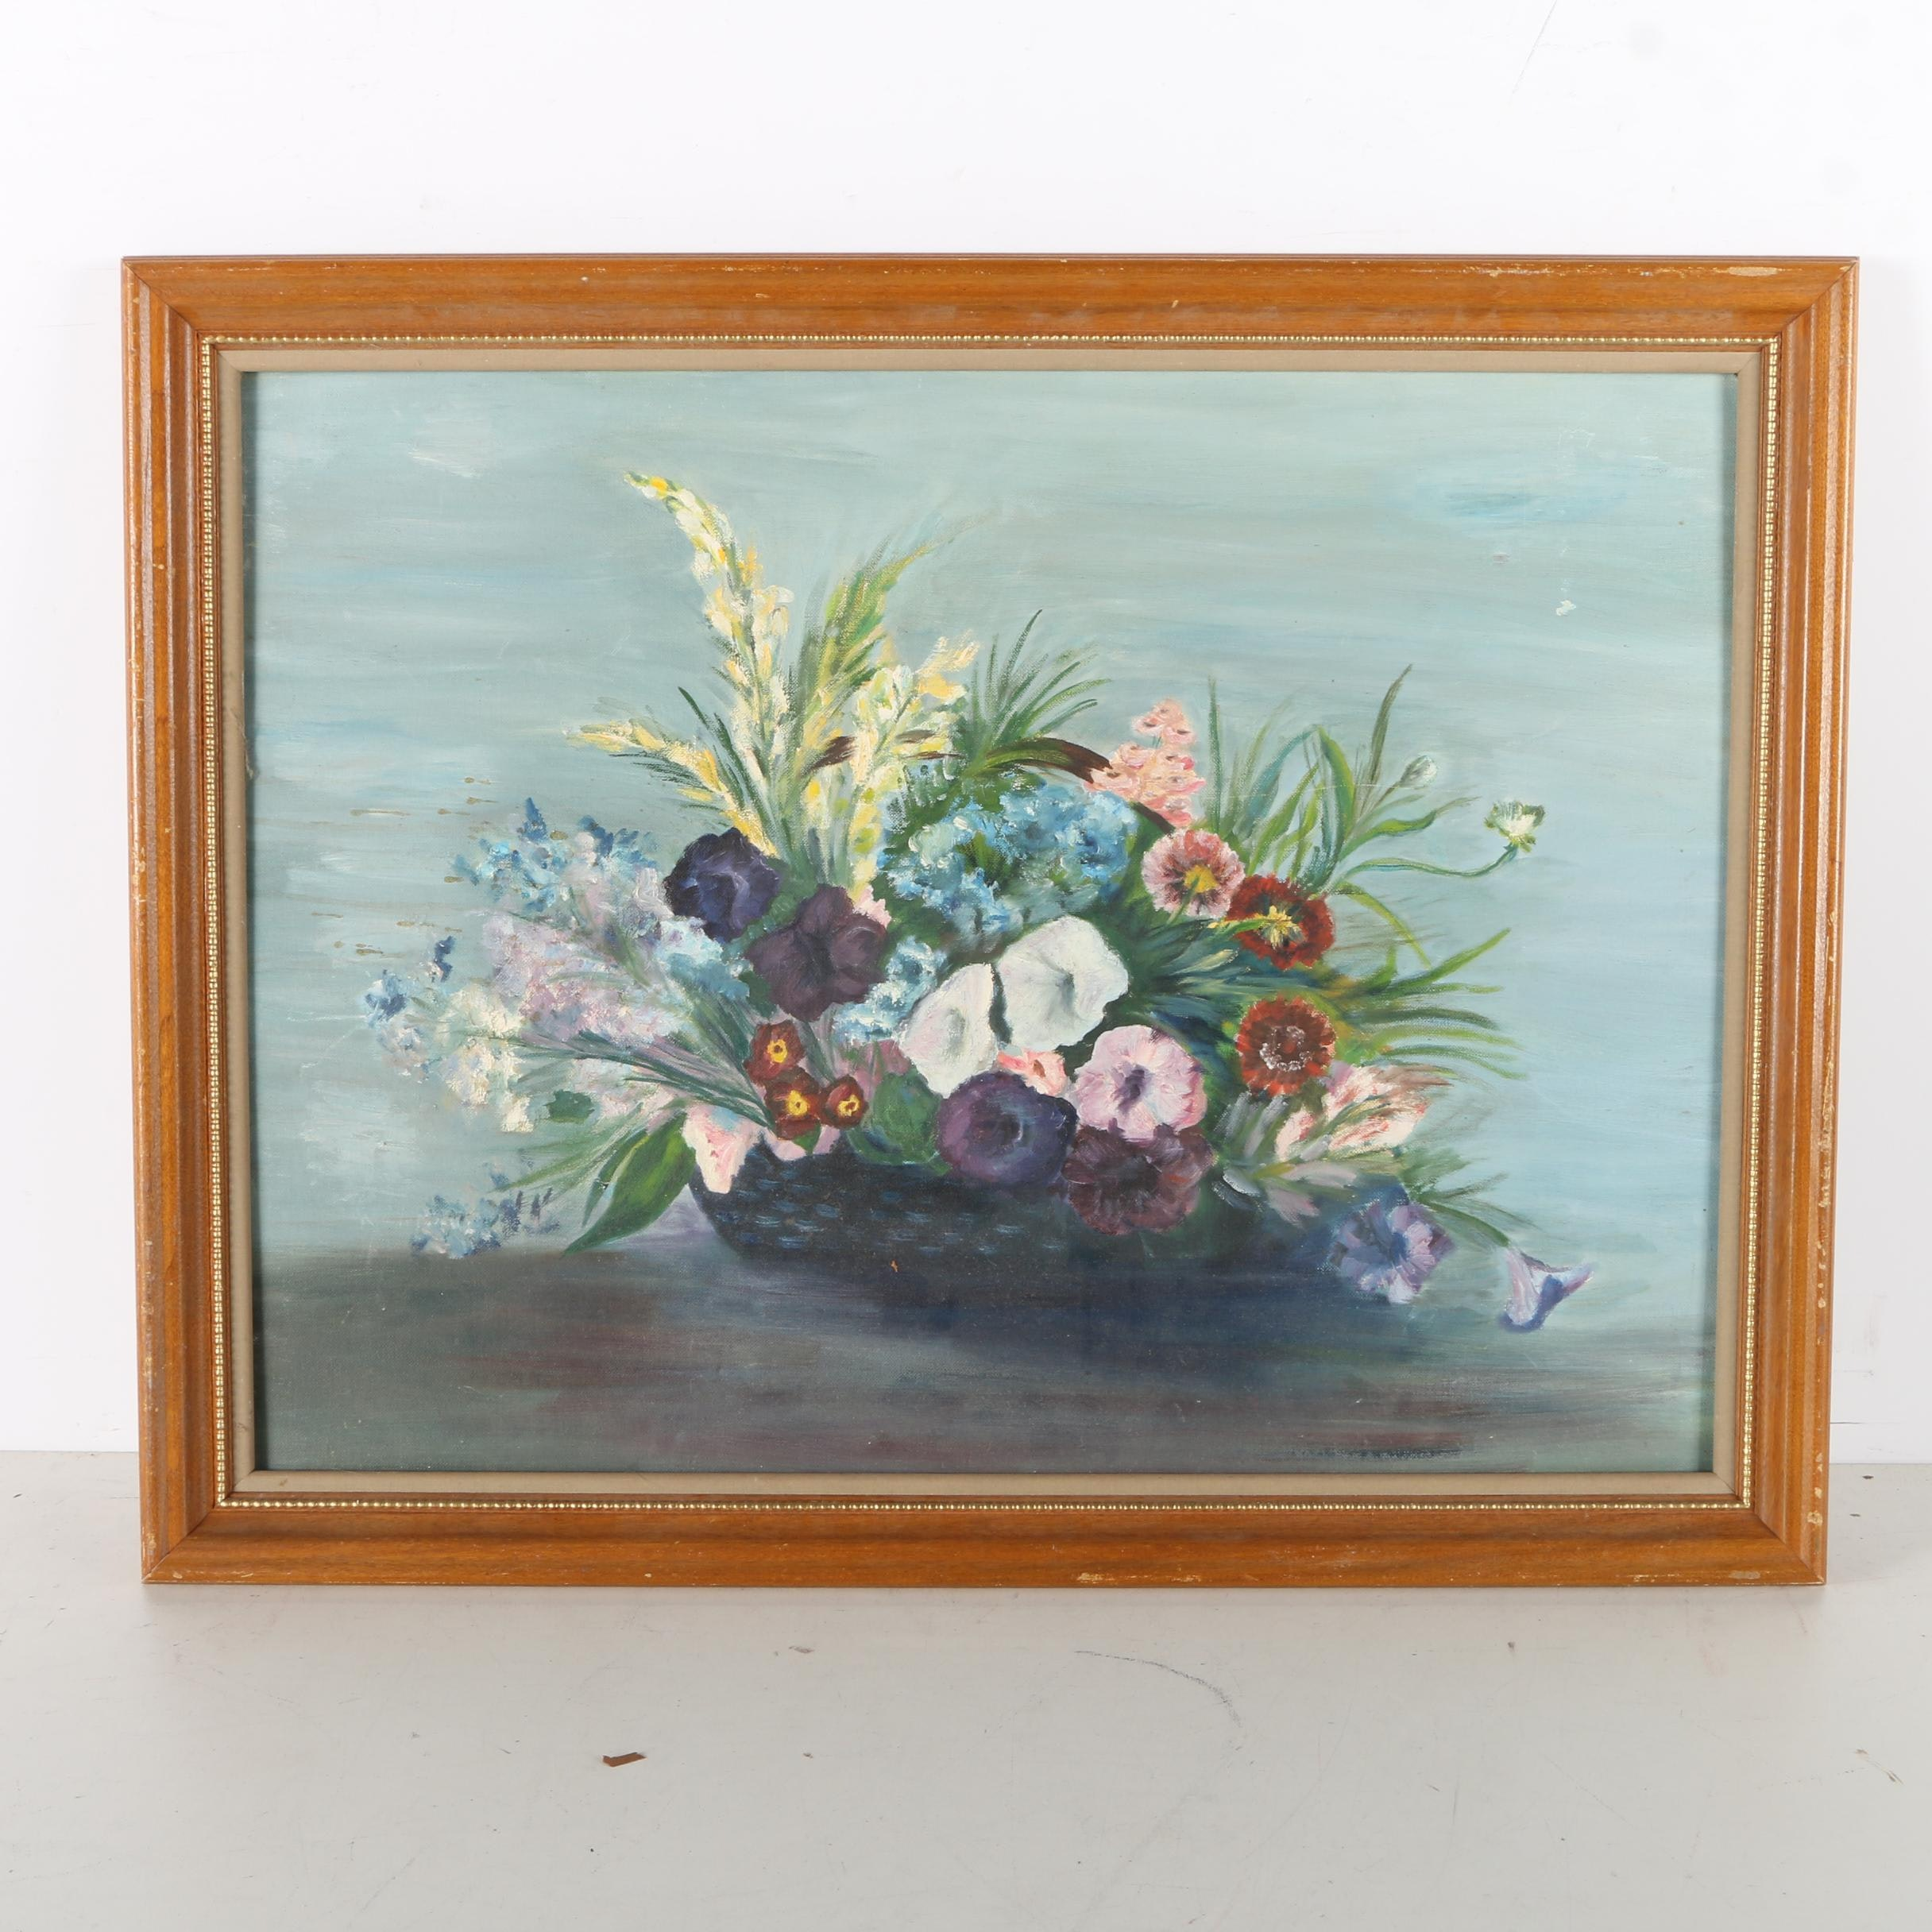 Catherine Martin Oil Painting of a Floral Still Life